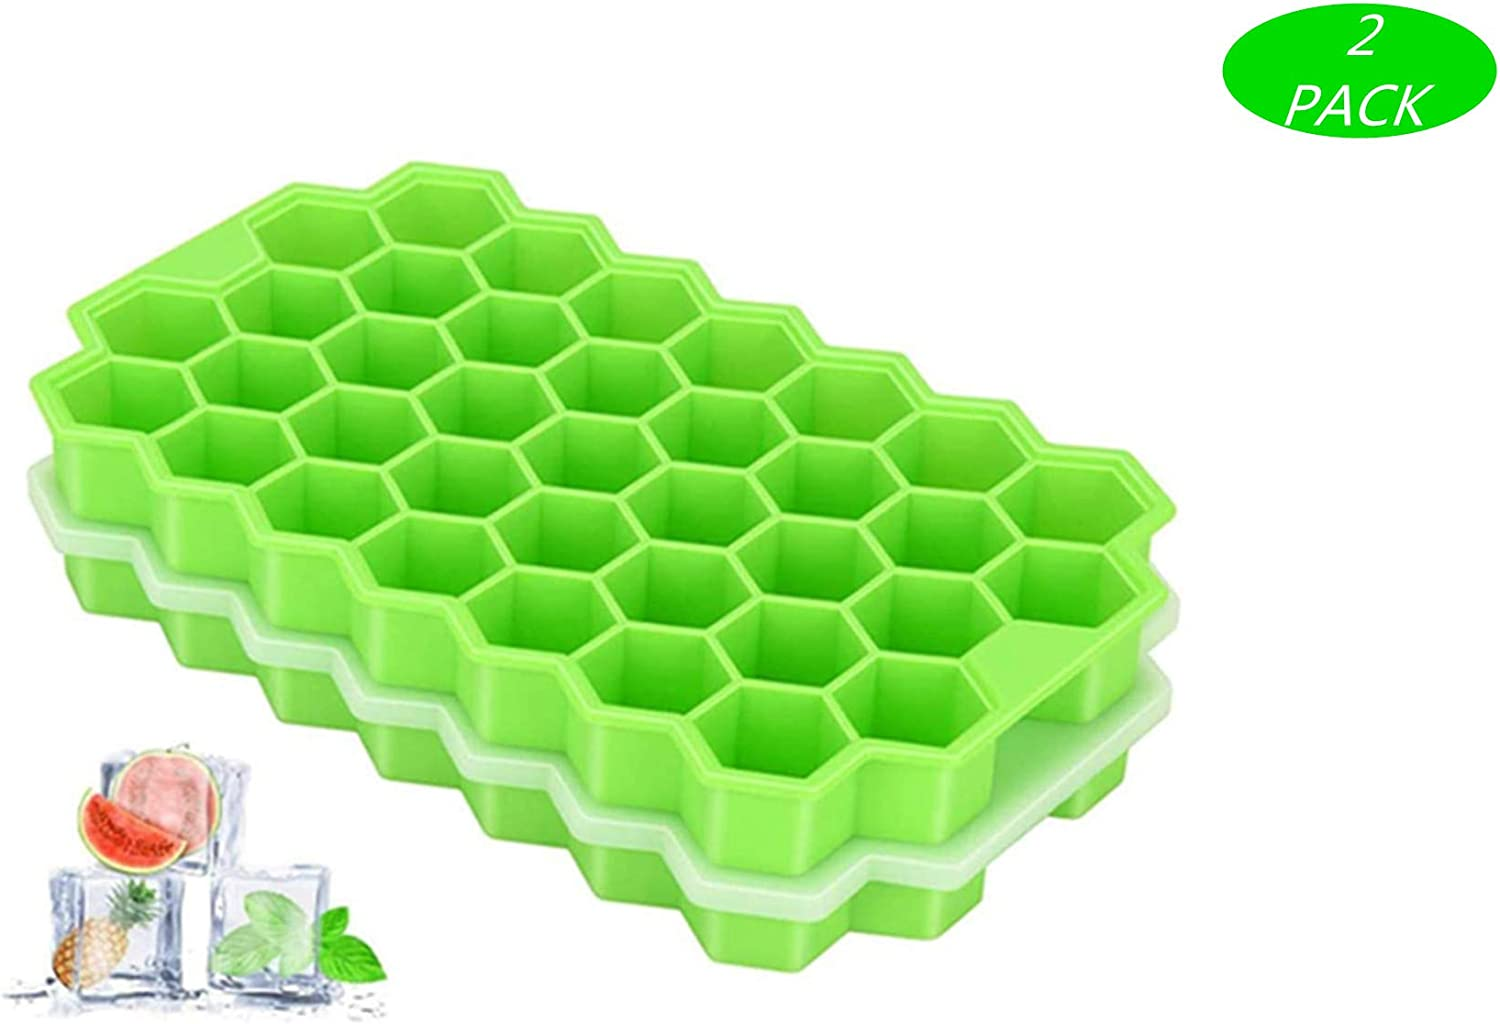 Ice Cube Trays, DCS 2 Pack Silicone Ice Cube Molds with Lid Flexible 74-Ice Trays BPA Free, for Whiskey, Cocktail, Stackable Flexible Safe Ice Cube Molds